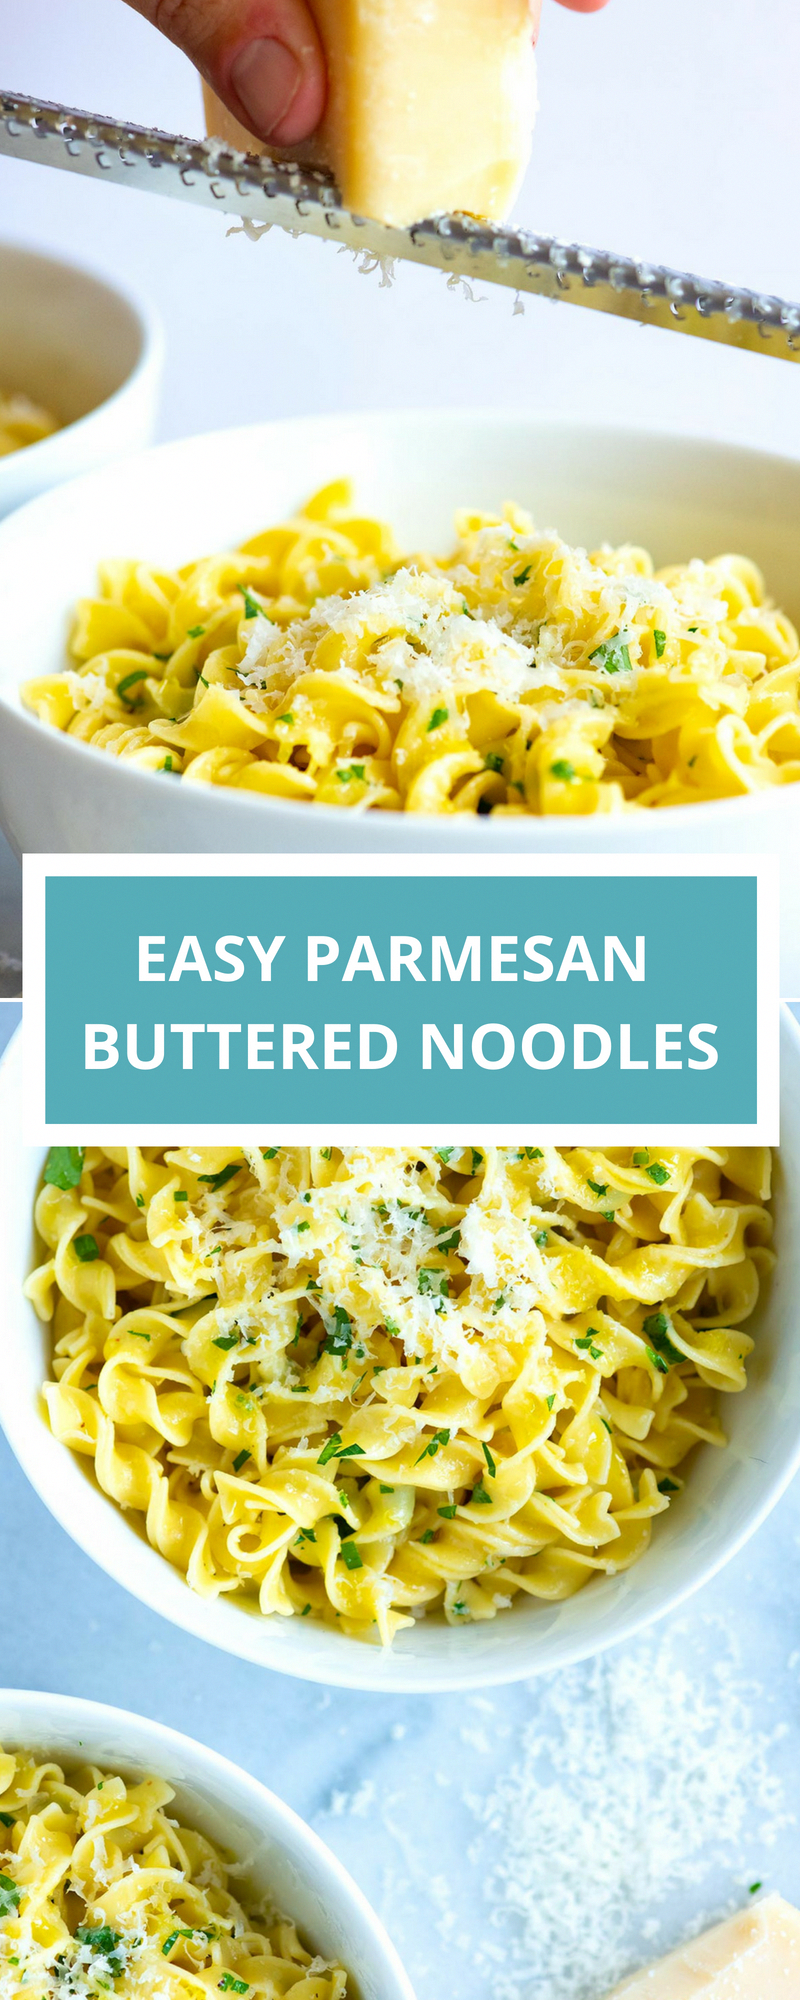 Easy Parmesan Buttered Noodles // I love this easy pasta recipe. Use egg noodles or your favorite pasta shape. These cheesy buttered noodles are perfect for dinner or work as a side dish.